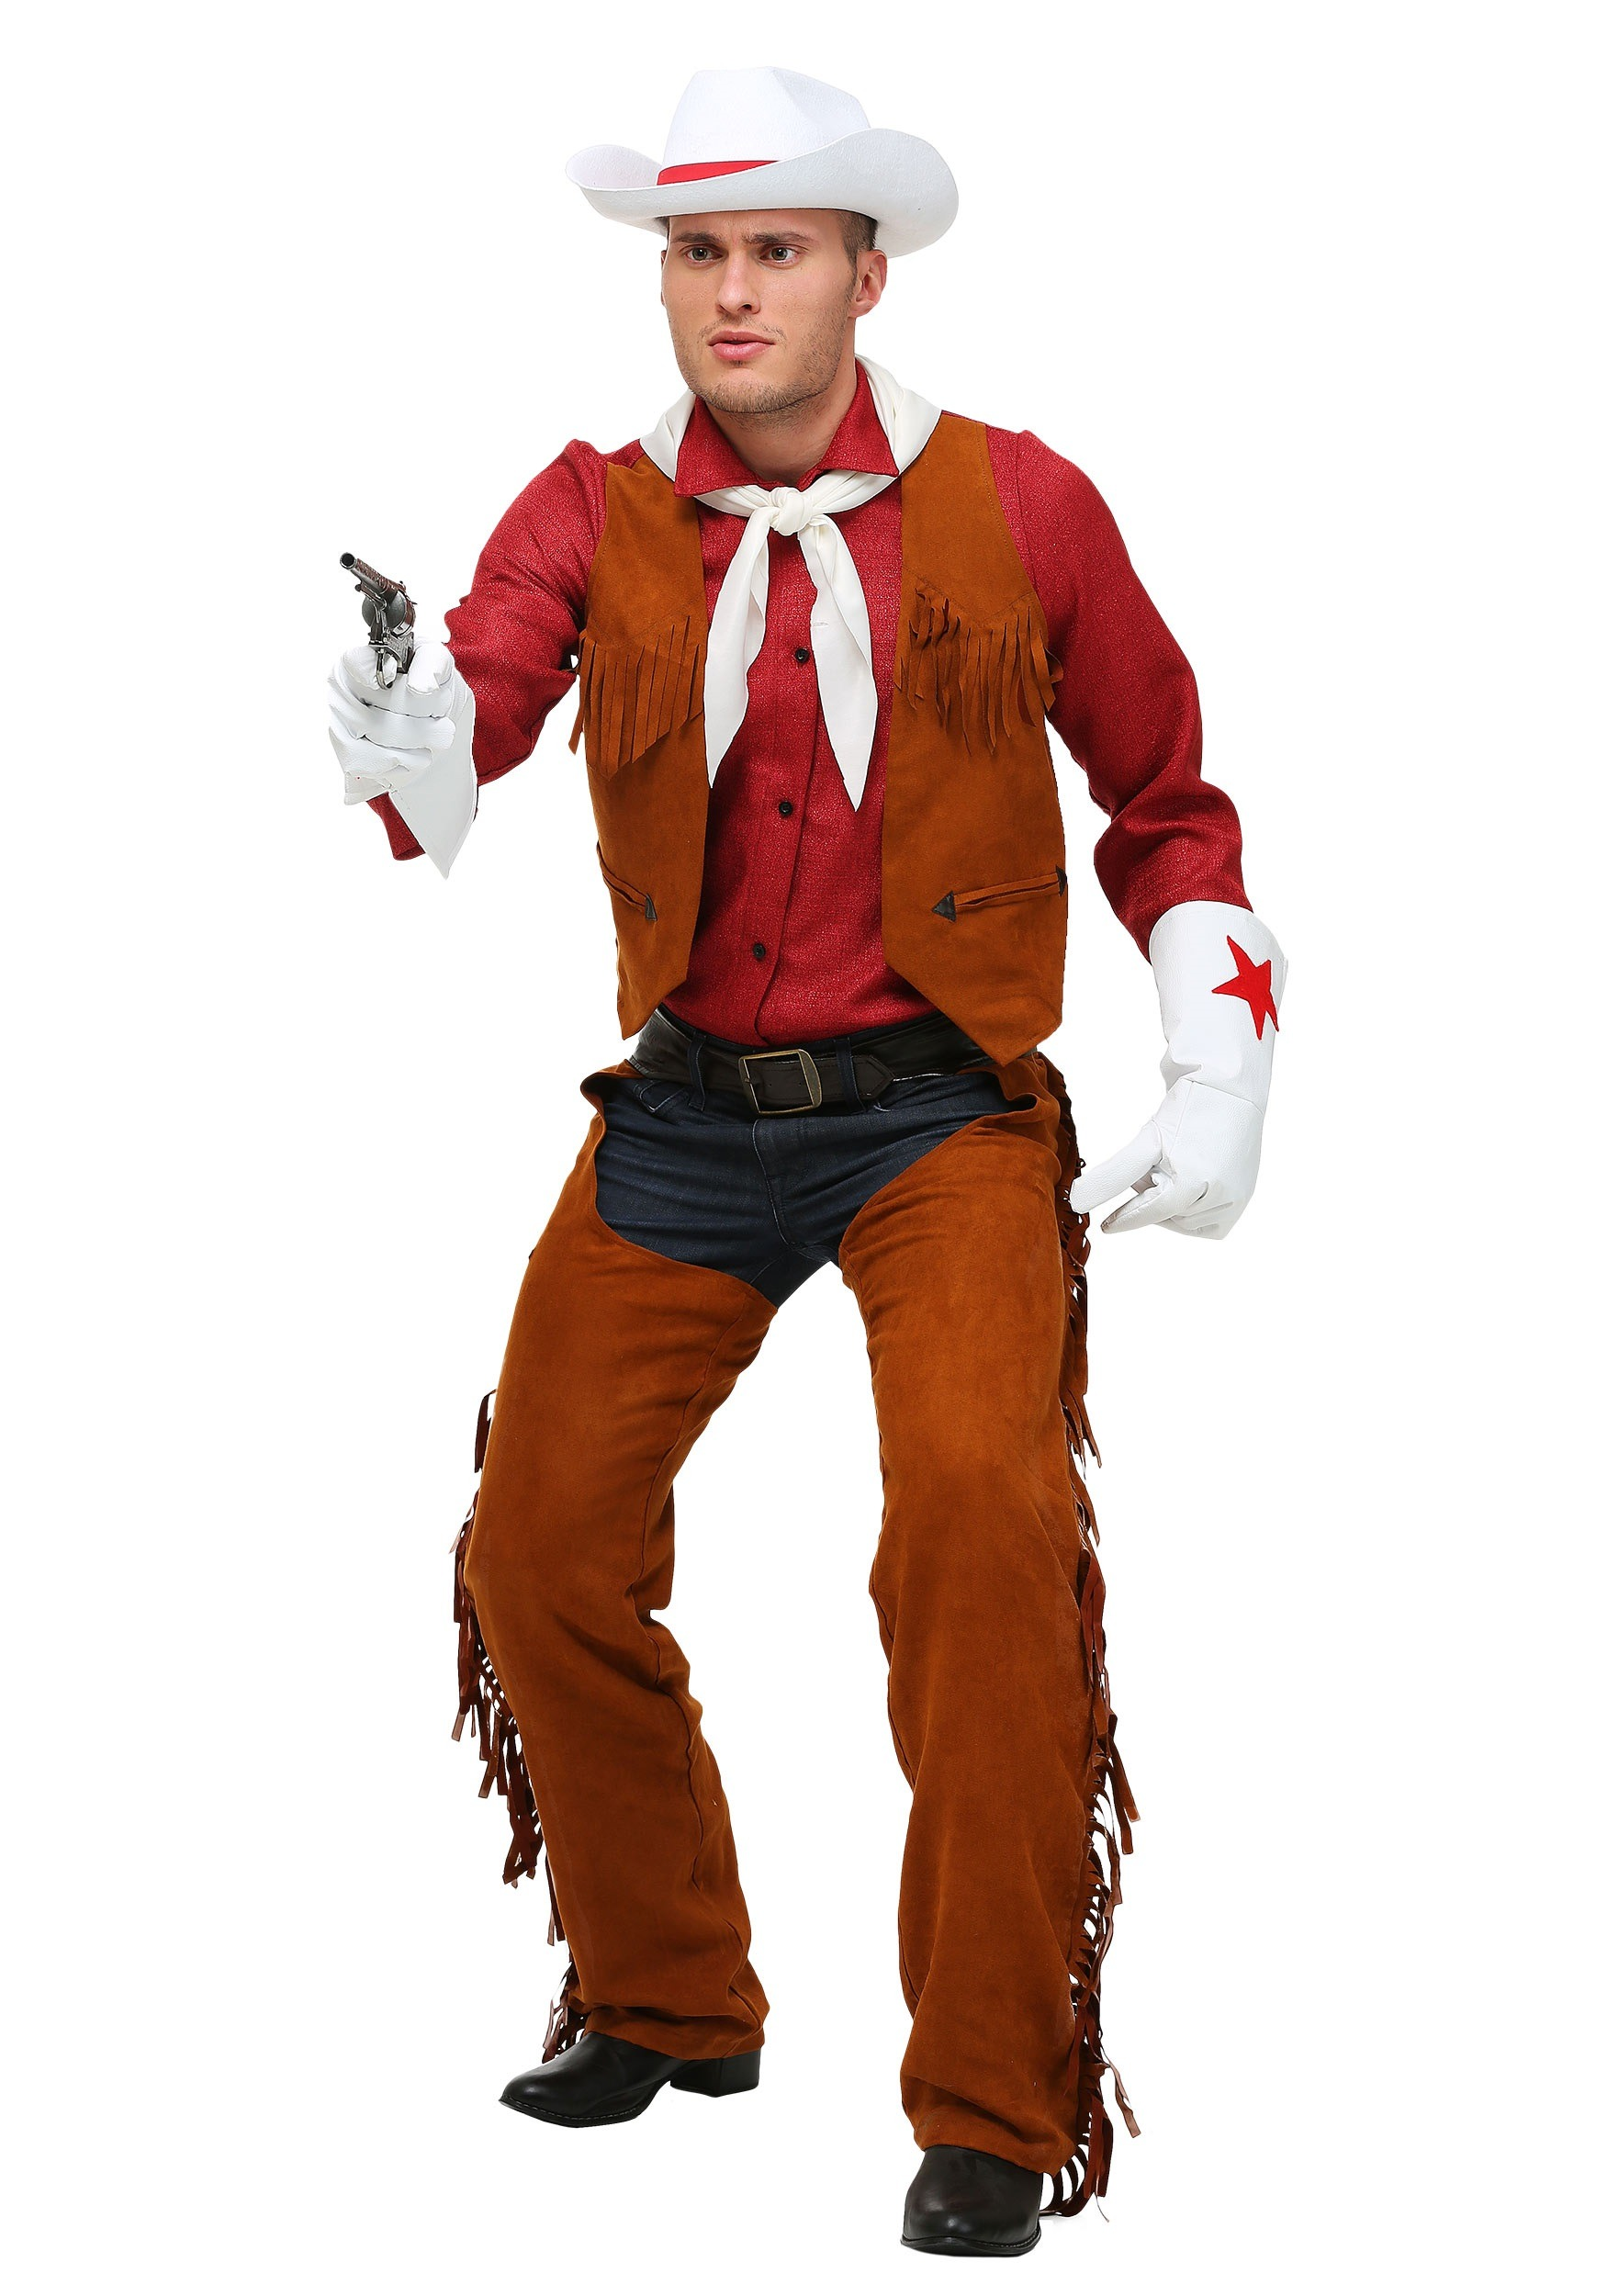 adult plus size rodeo cowboy costume - Cheapest Place To Buy Halloween Costumes